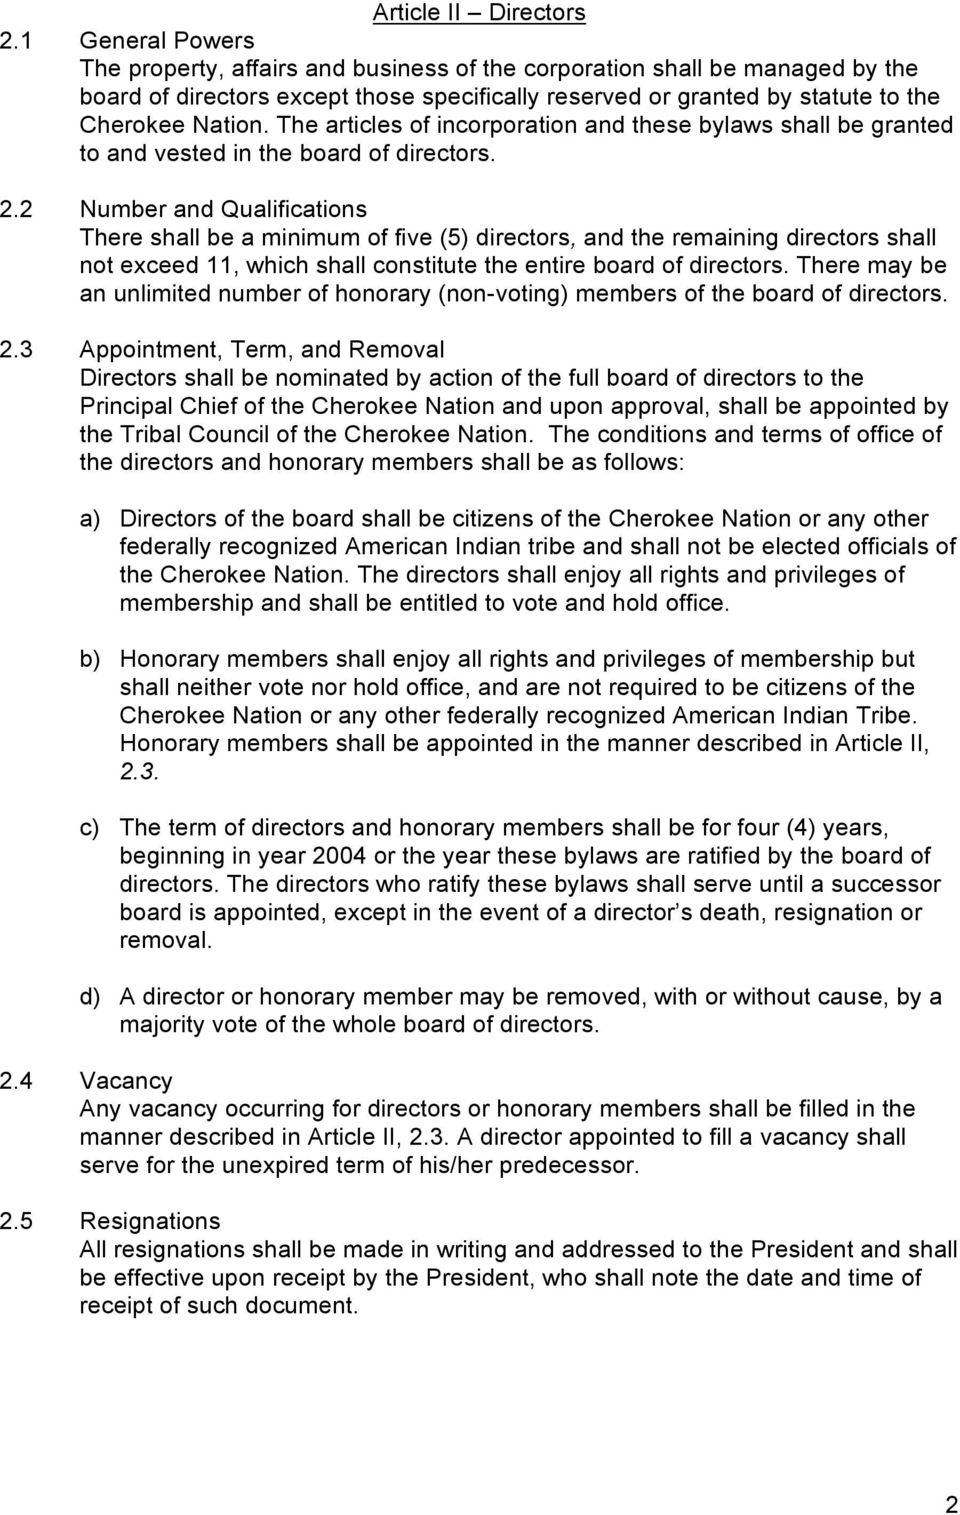 The articles of incorporation and these bylaws shall be granted to and vested in the board of directors. 2.